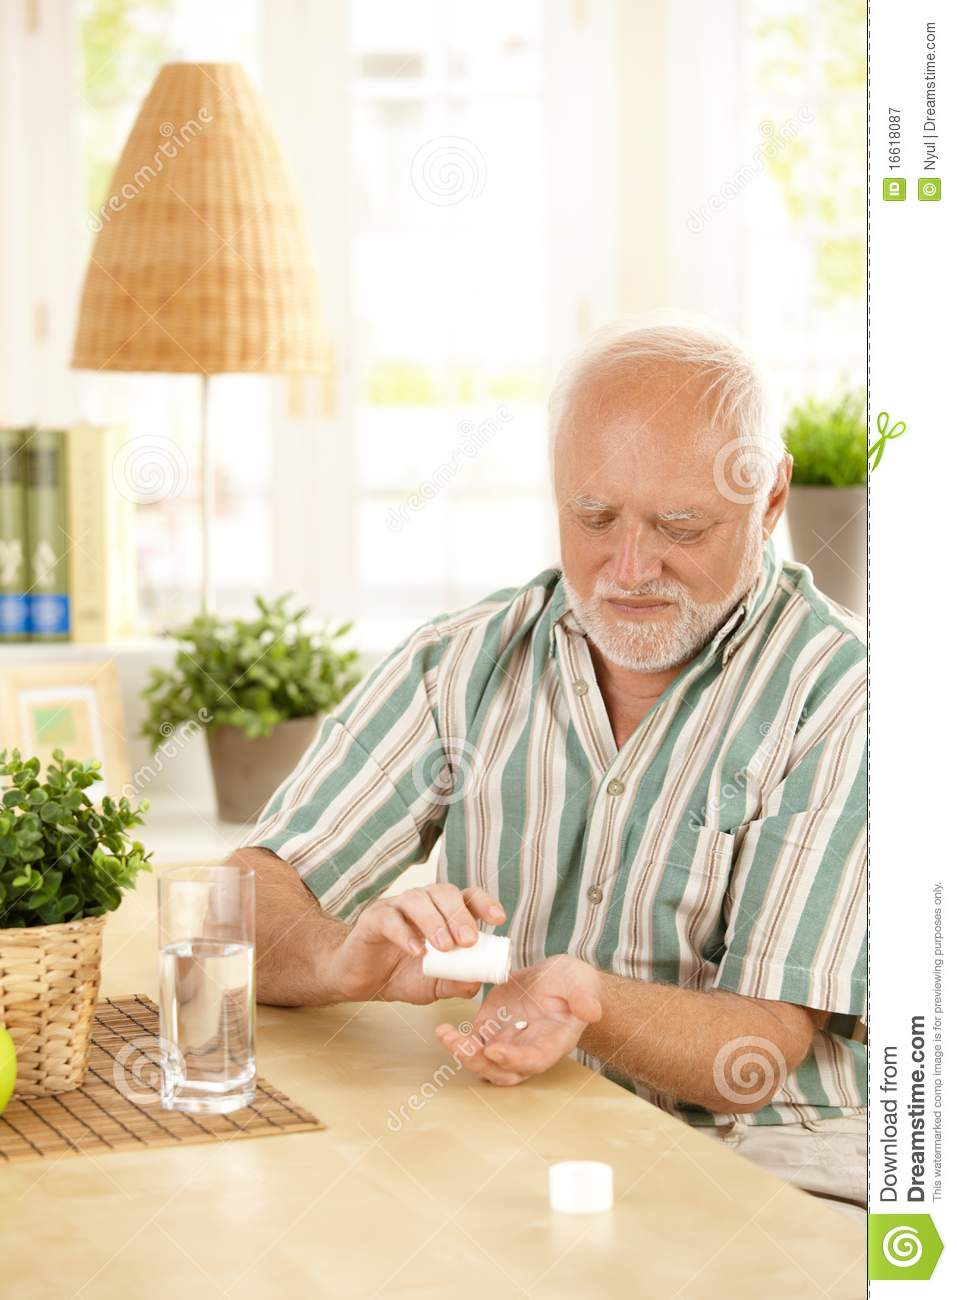 Senior Man Taking Medication At Home Royalty Free Stock ...